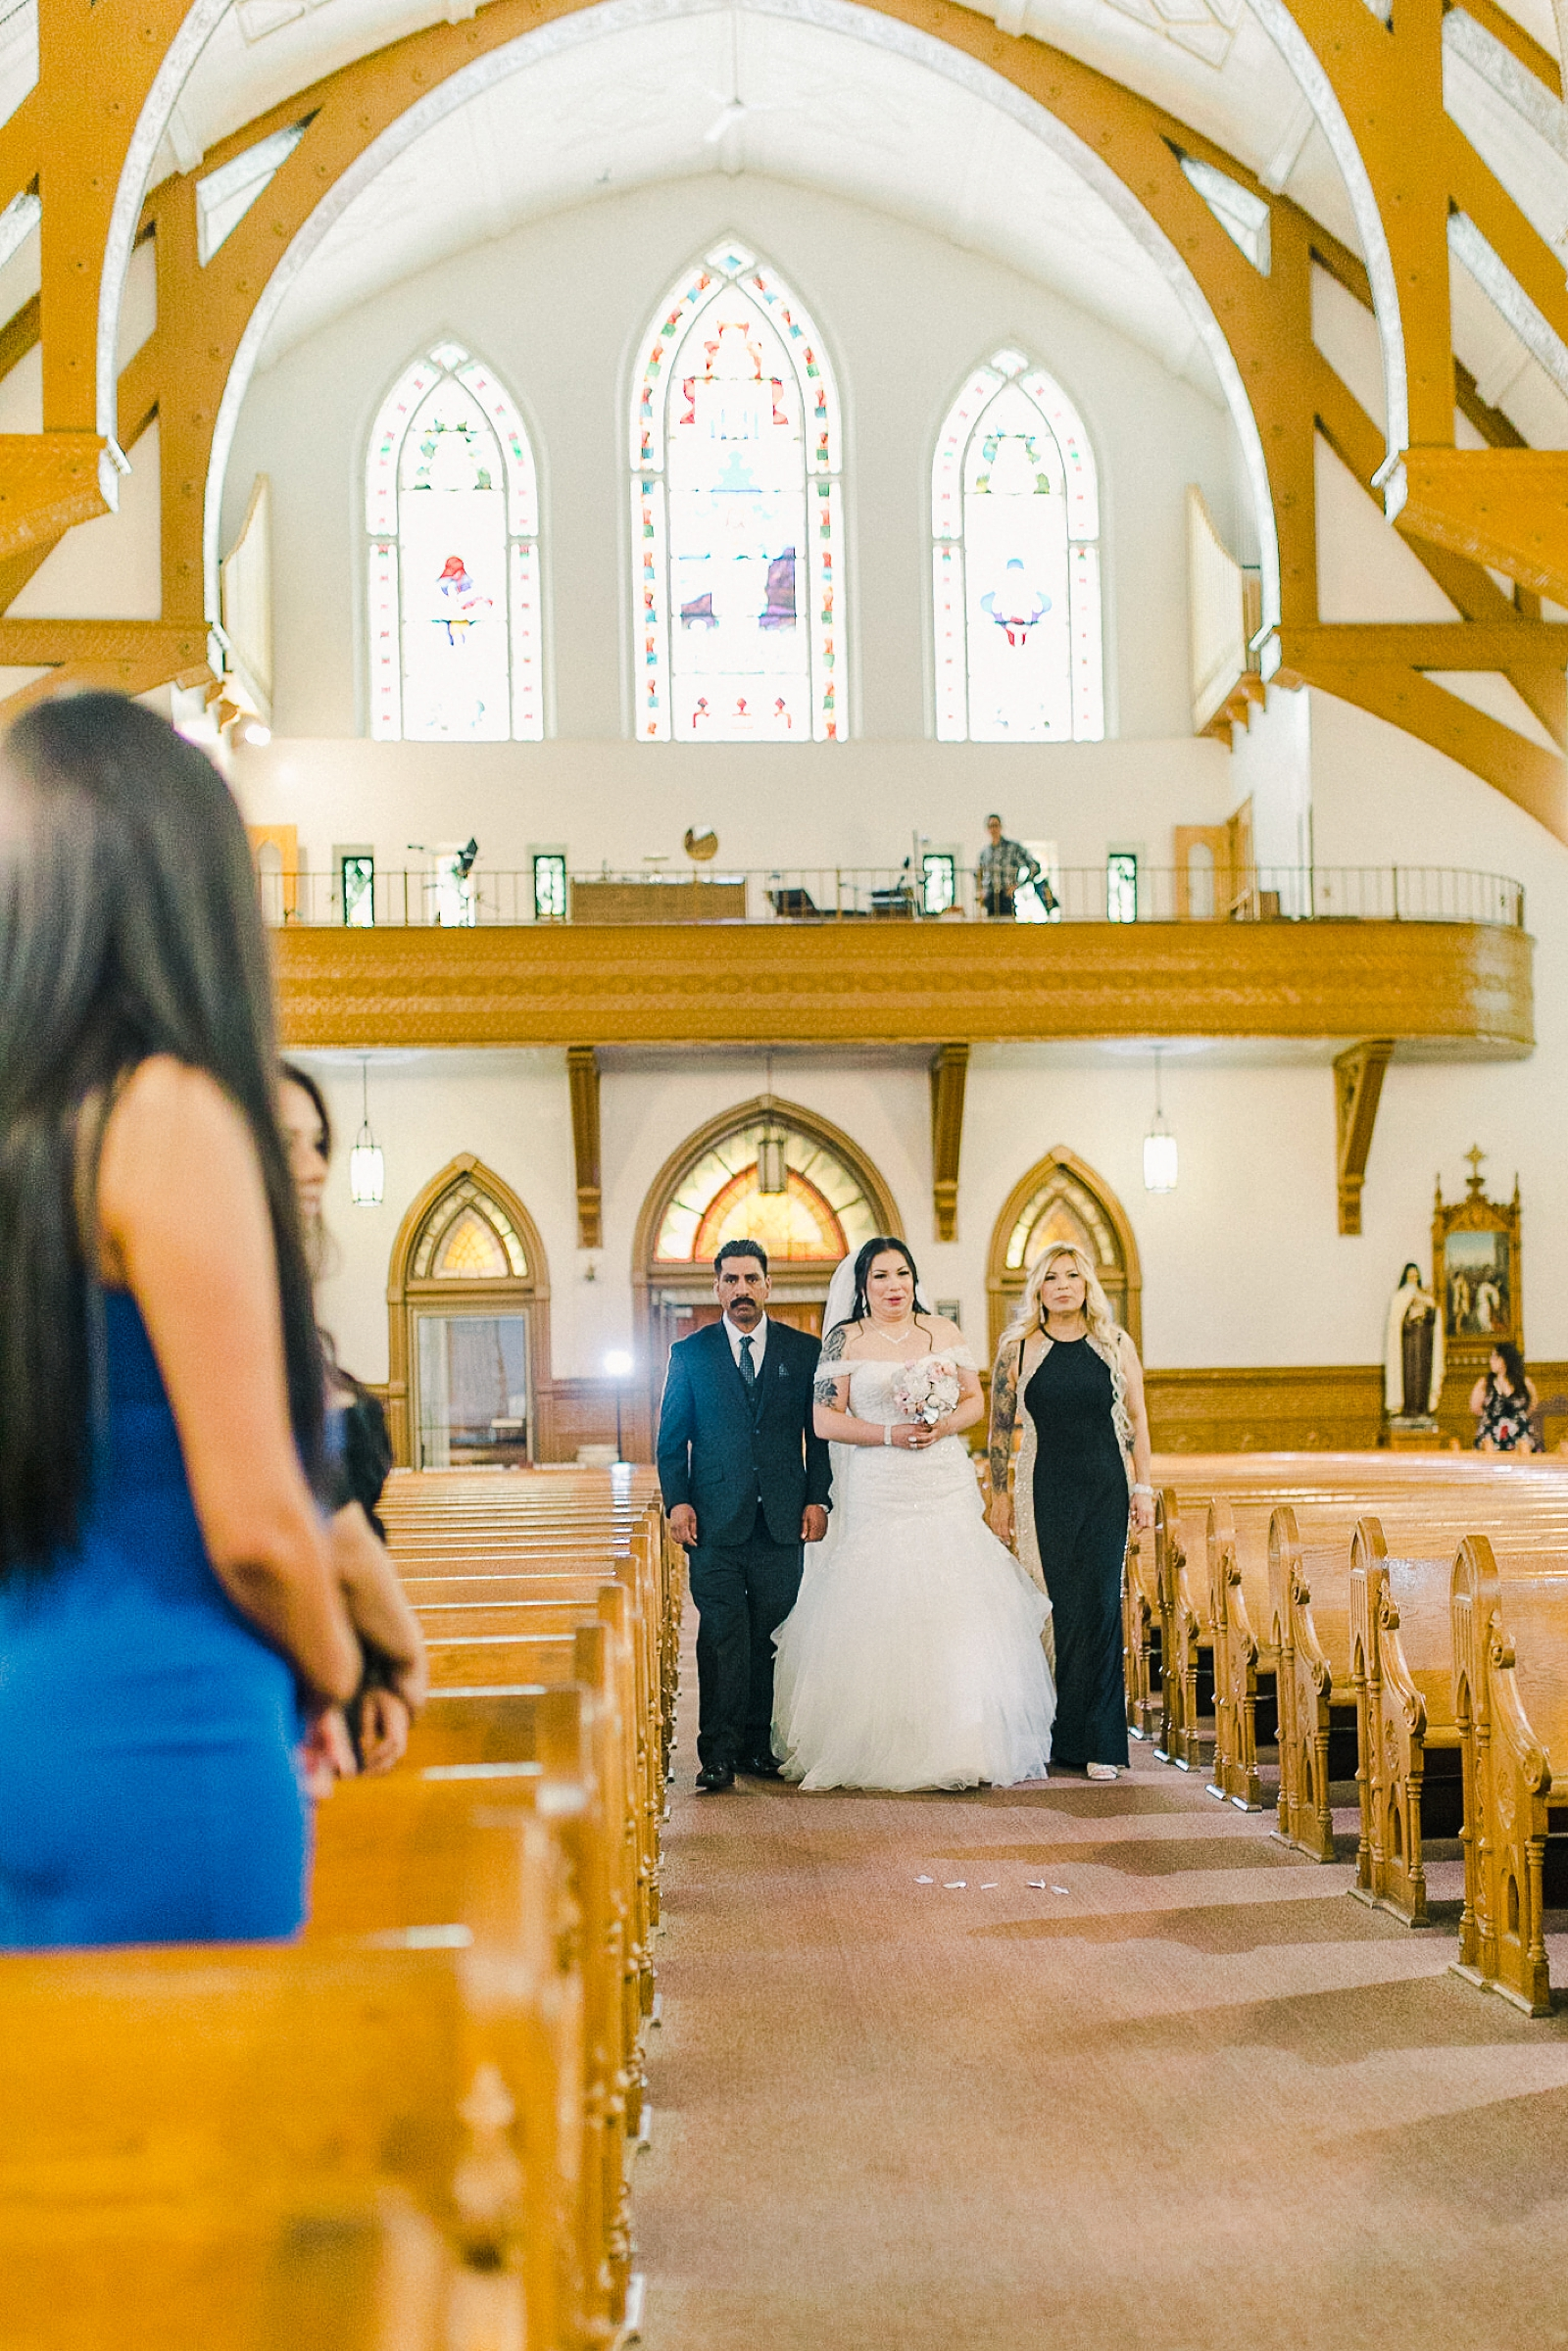 Cache Valley Logan Traditional Catholic Wedding Ceremony in a cathedral, Utah wedding photography, bride walks down the aisle